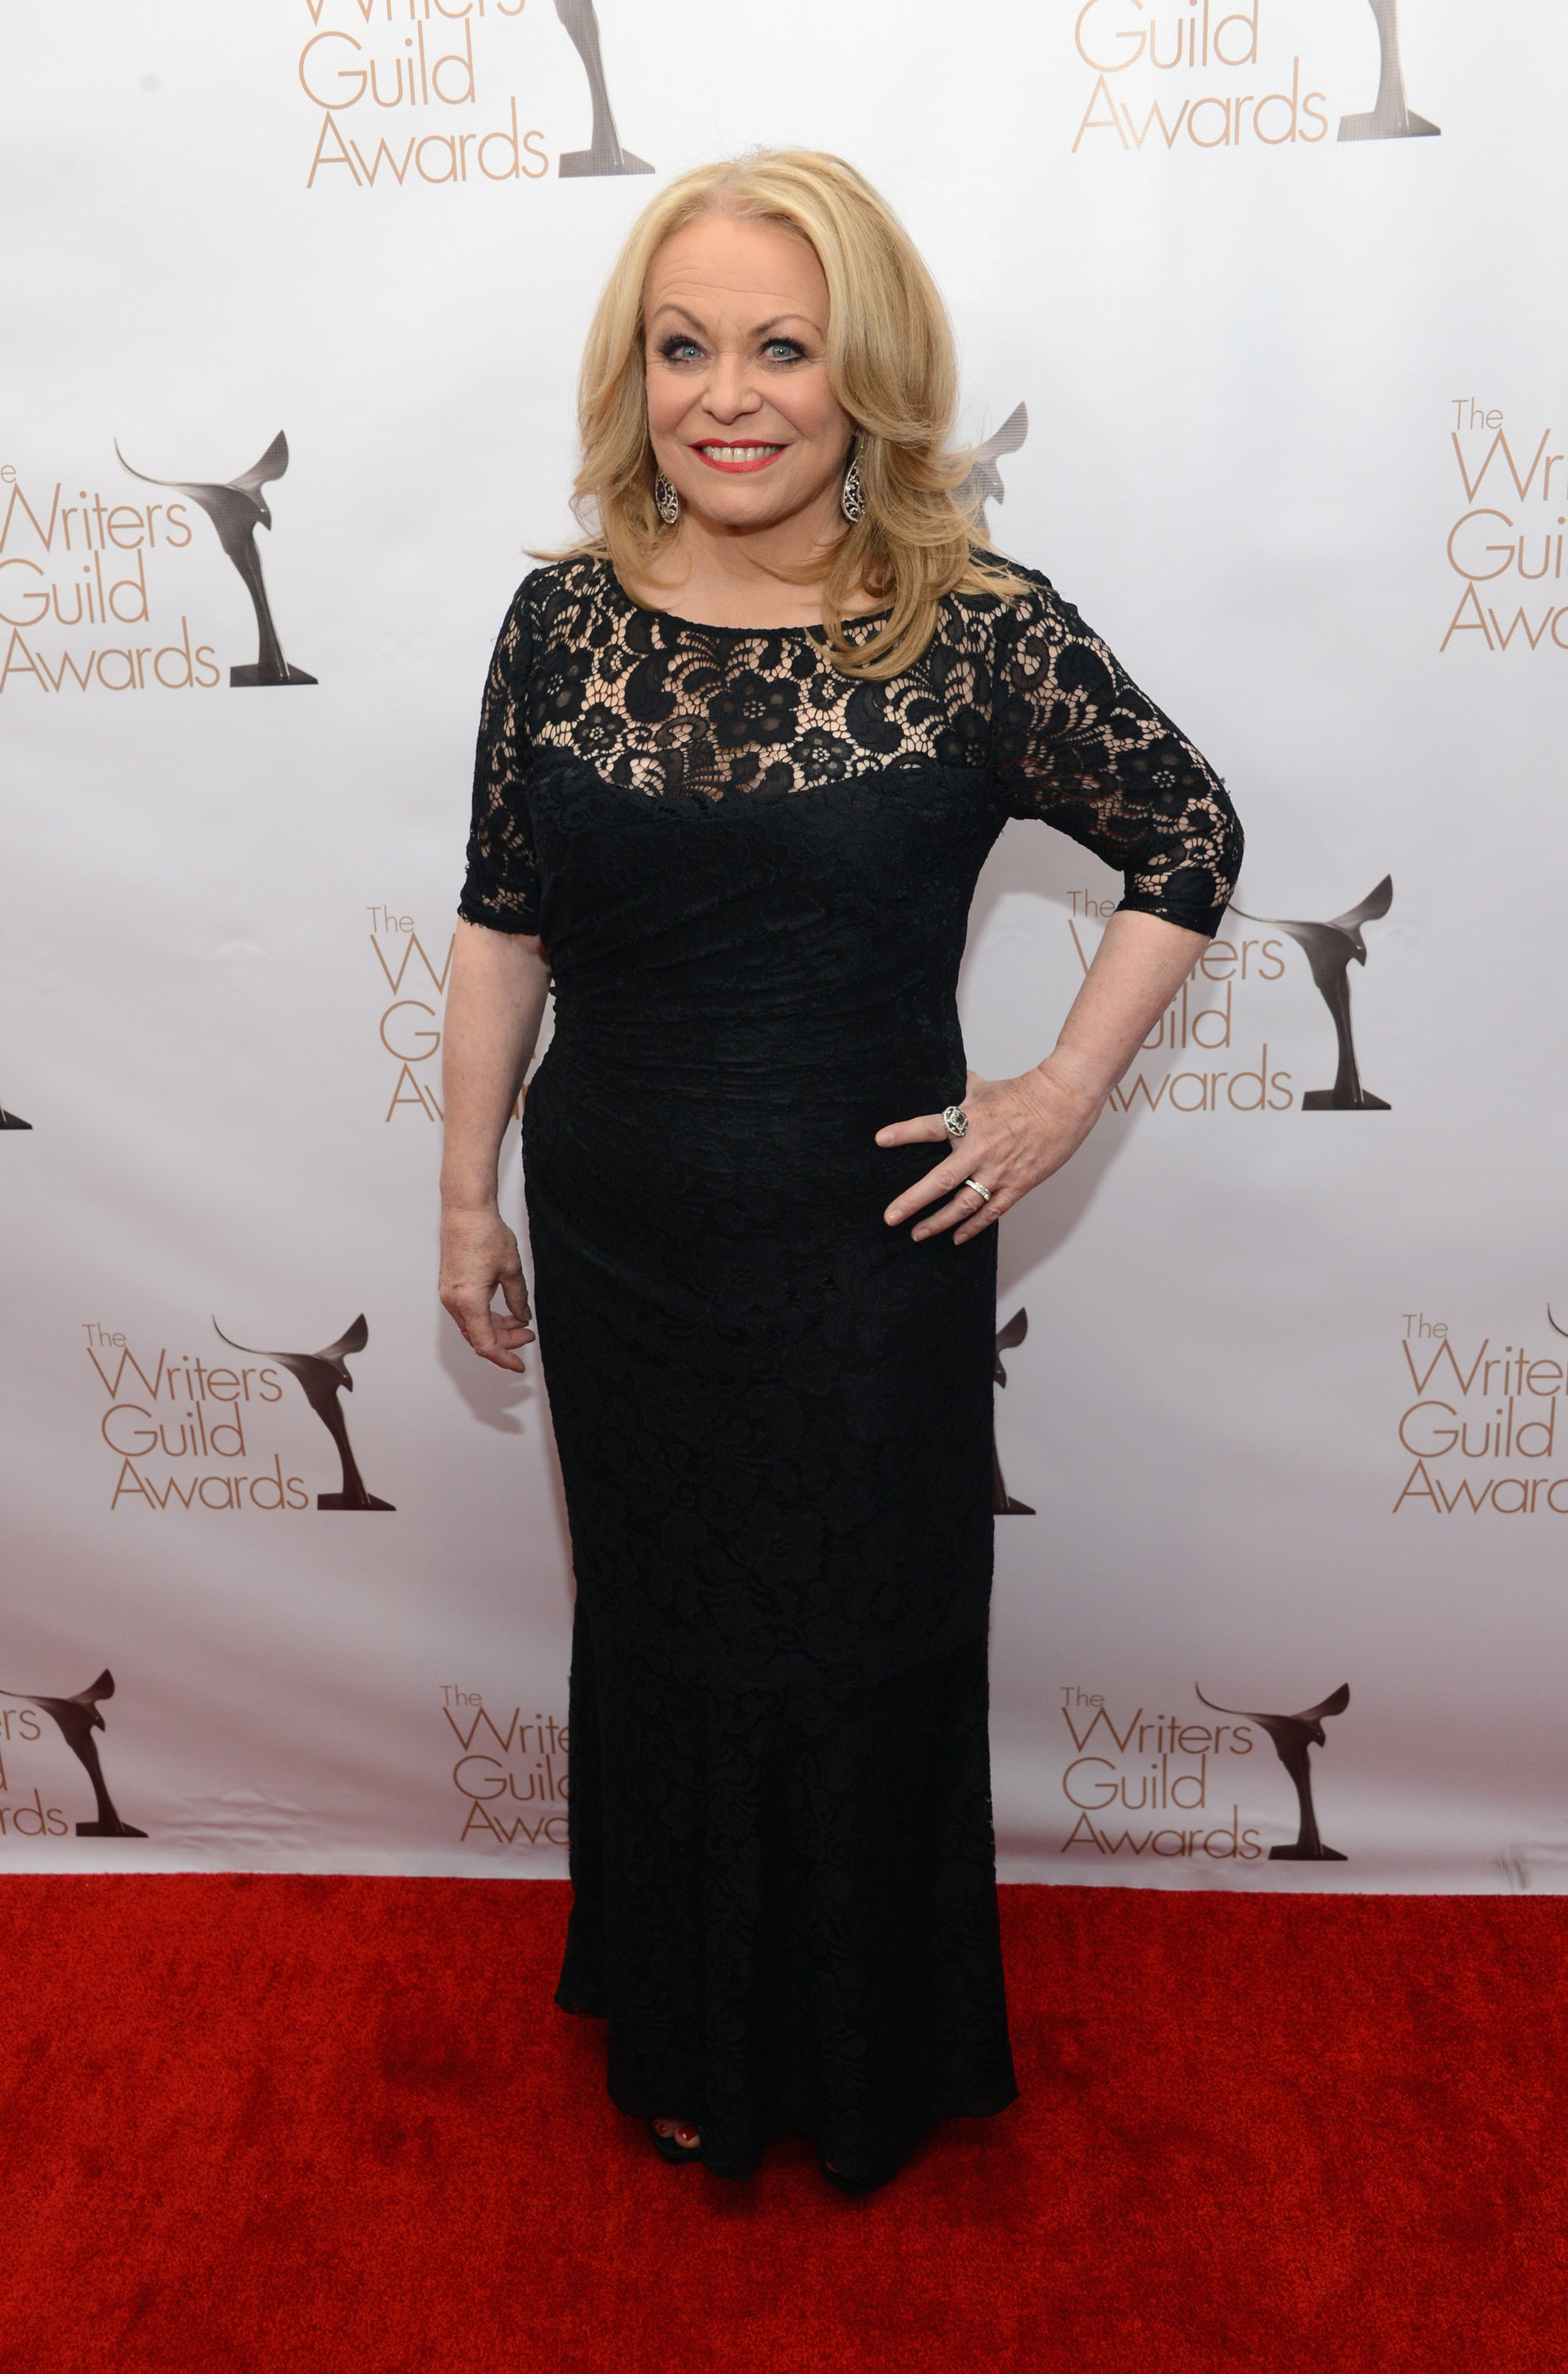 Jacki Weaver wore a lace dress.